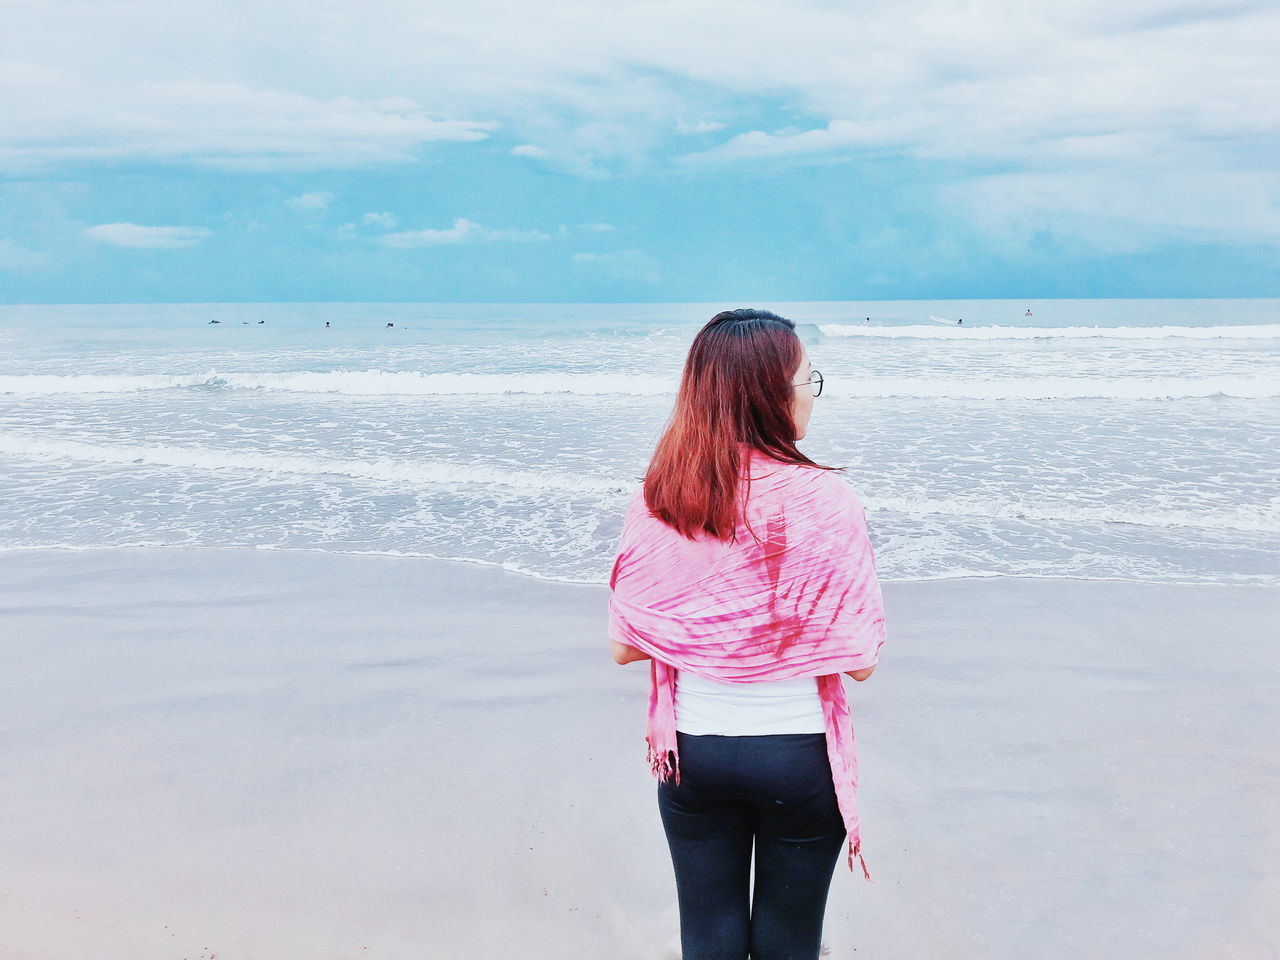 Girl Summer Ocean Oceanview Faces Of Summer Facing The Ocean Sky Sea And Sky Blue Wave Waves, Ocean, Nature Wanderlust Traveling Travel Photography Waves Storm Cloud Stormy Weather